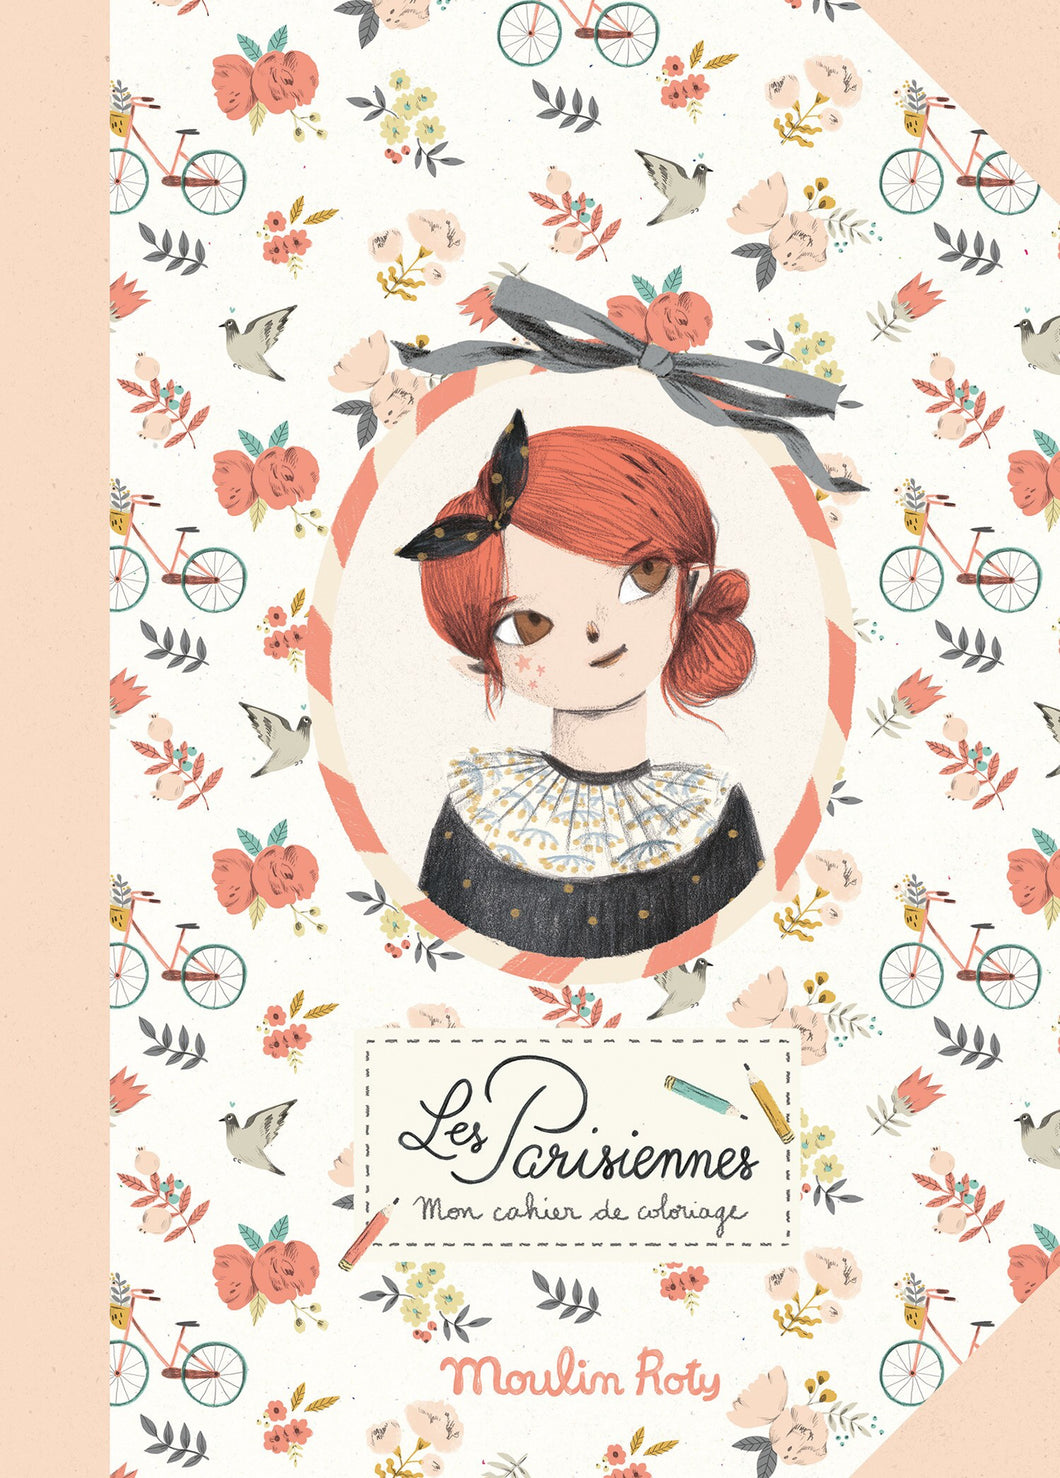 Moulin Roty Colouring book Les Parisiennes